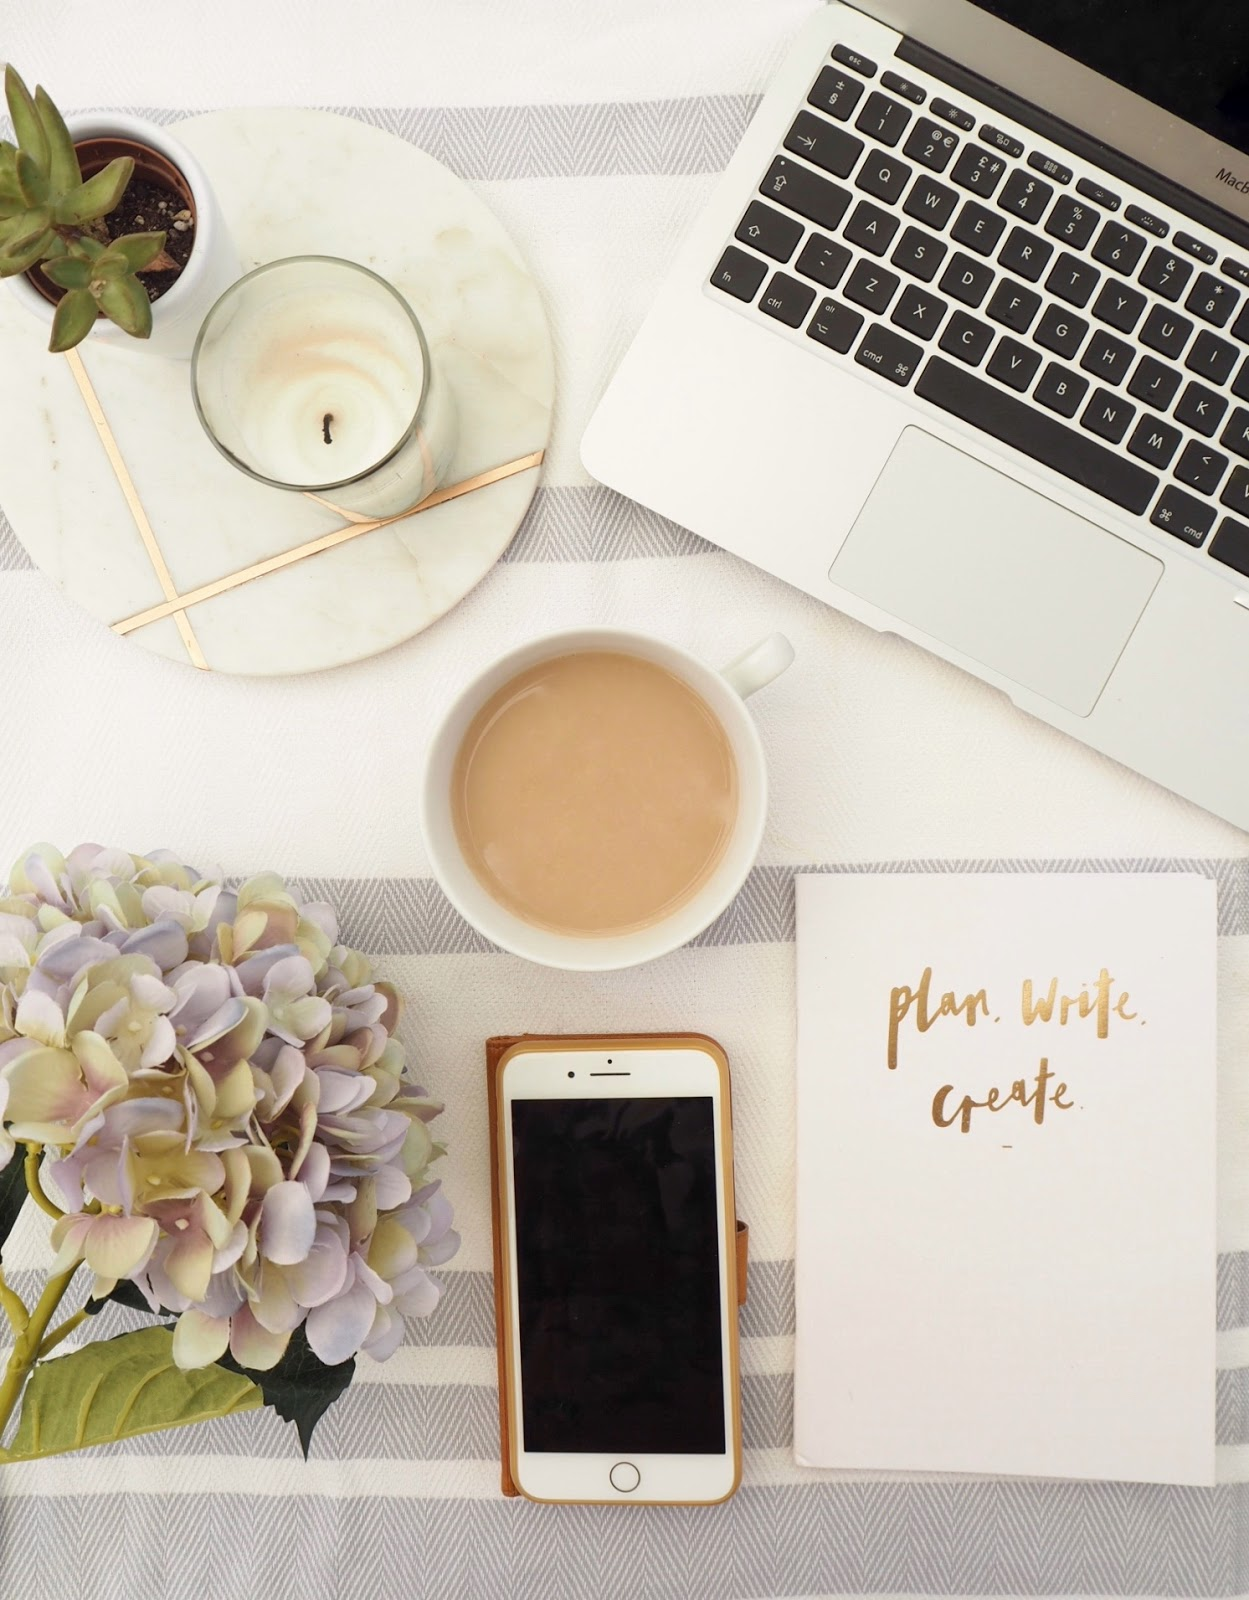 how to start a blog in three easy steps, launching a blog for beginners including which platform to choose, how to pick a name for your blog and how to link your social media accounts to your blog.